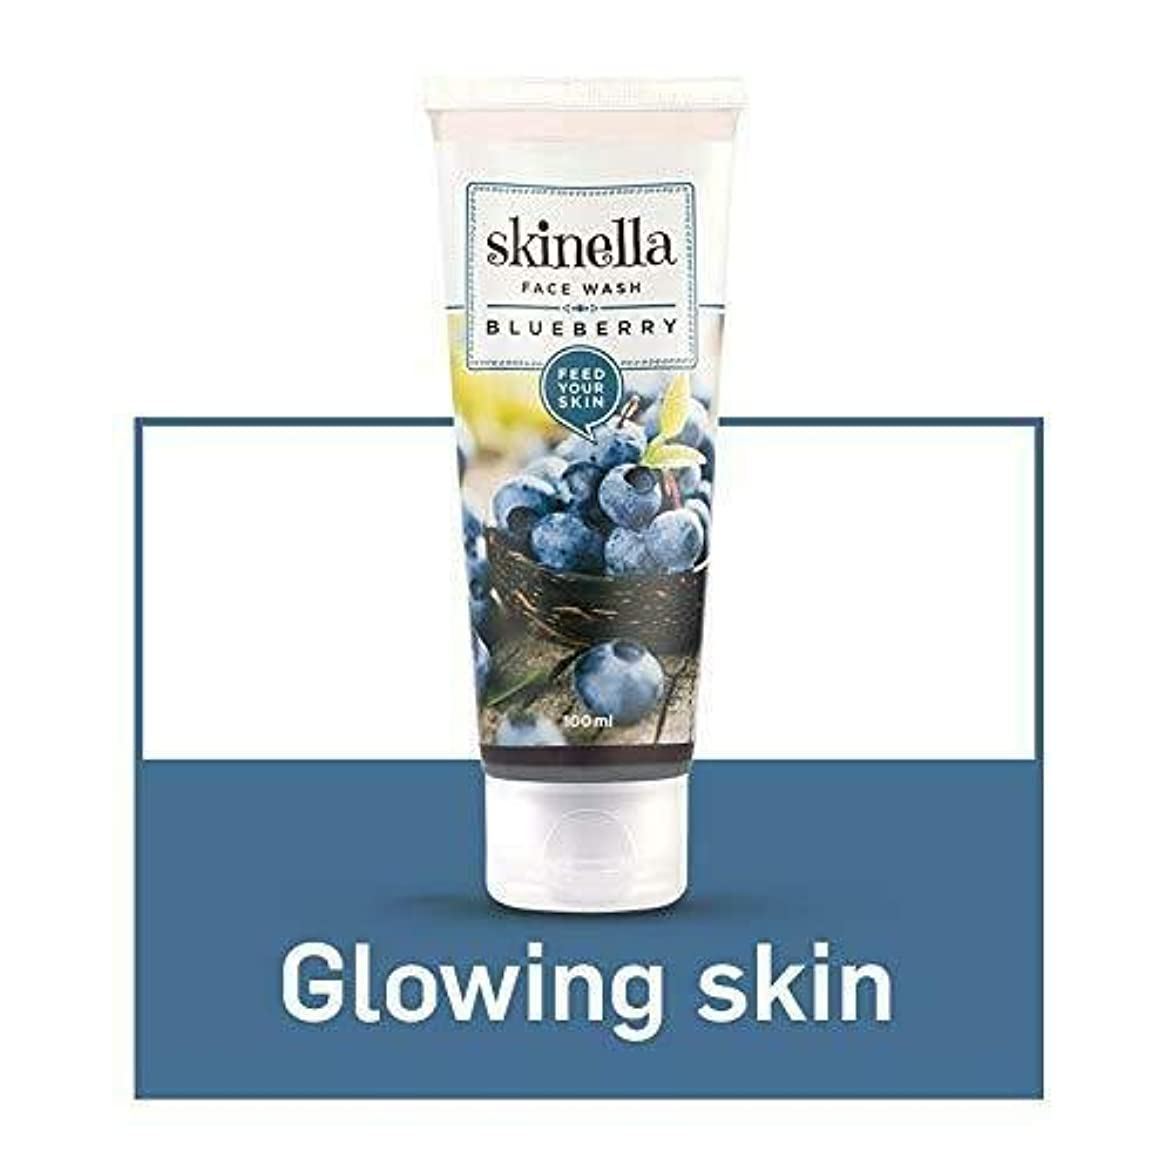 Skinella Blueberry Face Wash 100ml blueberry extracts & olive oil Cleanses Skin Skinellaブルーベリーフェイスウォッシュ ブルーベリーエキス...